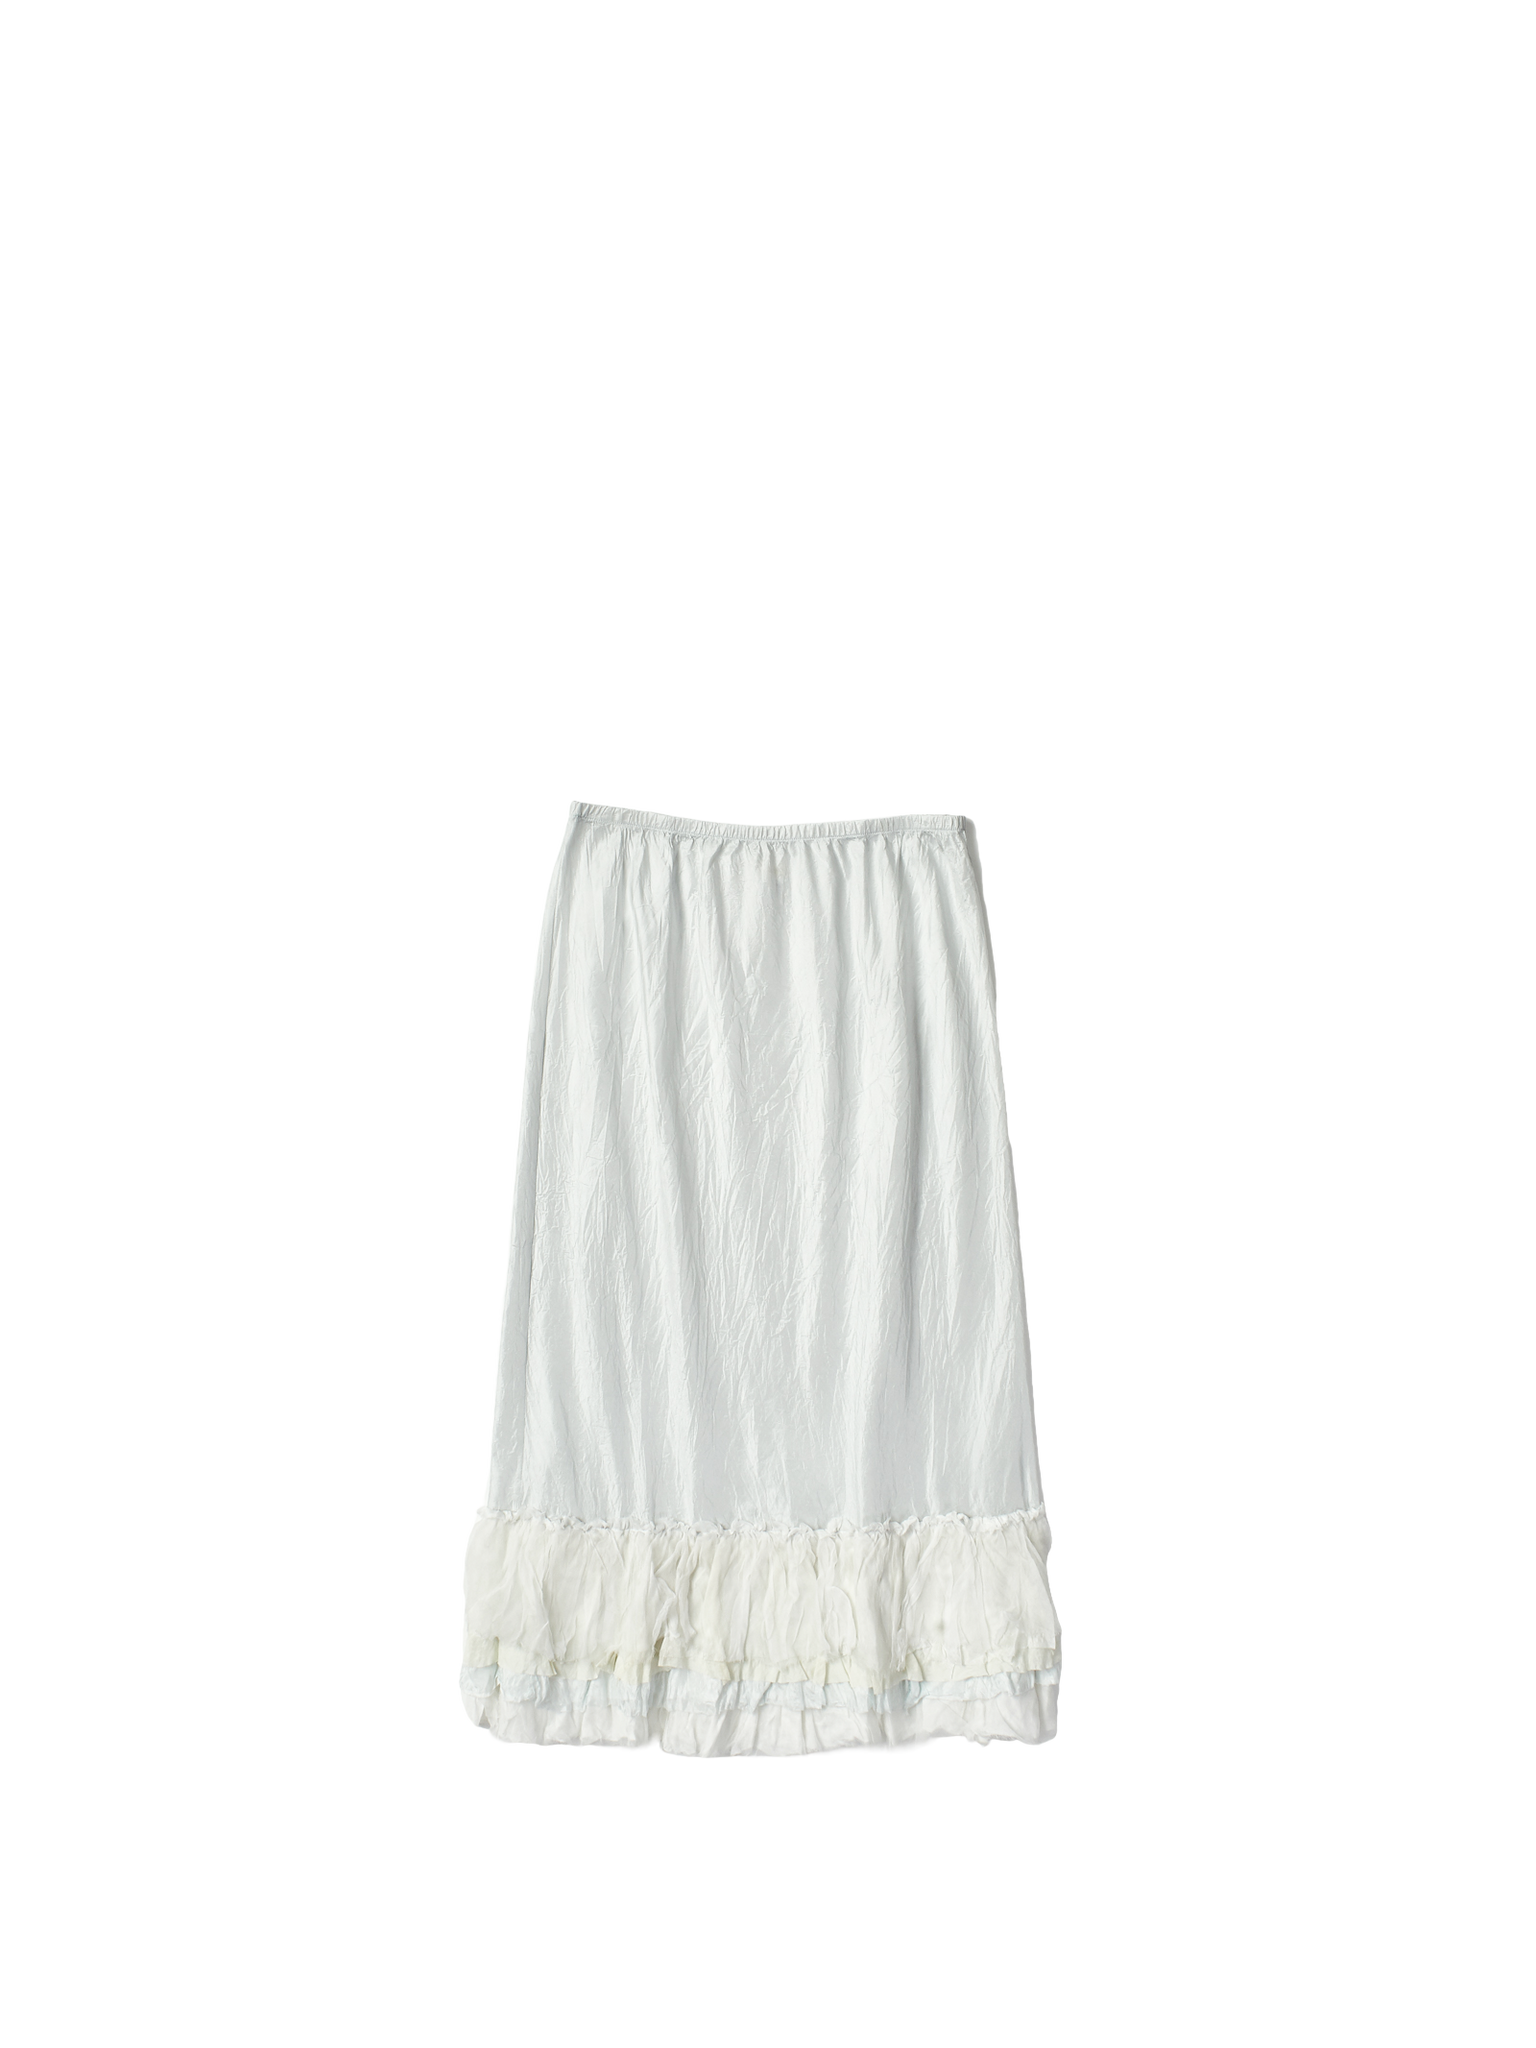 white silk skirt